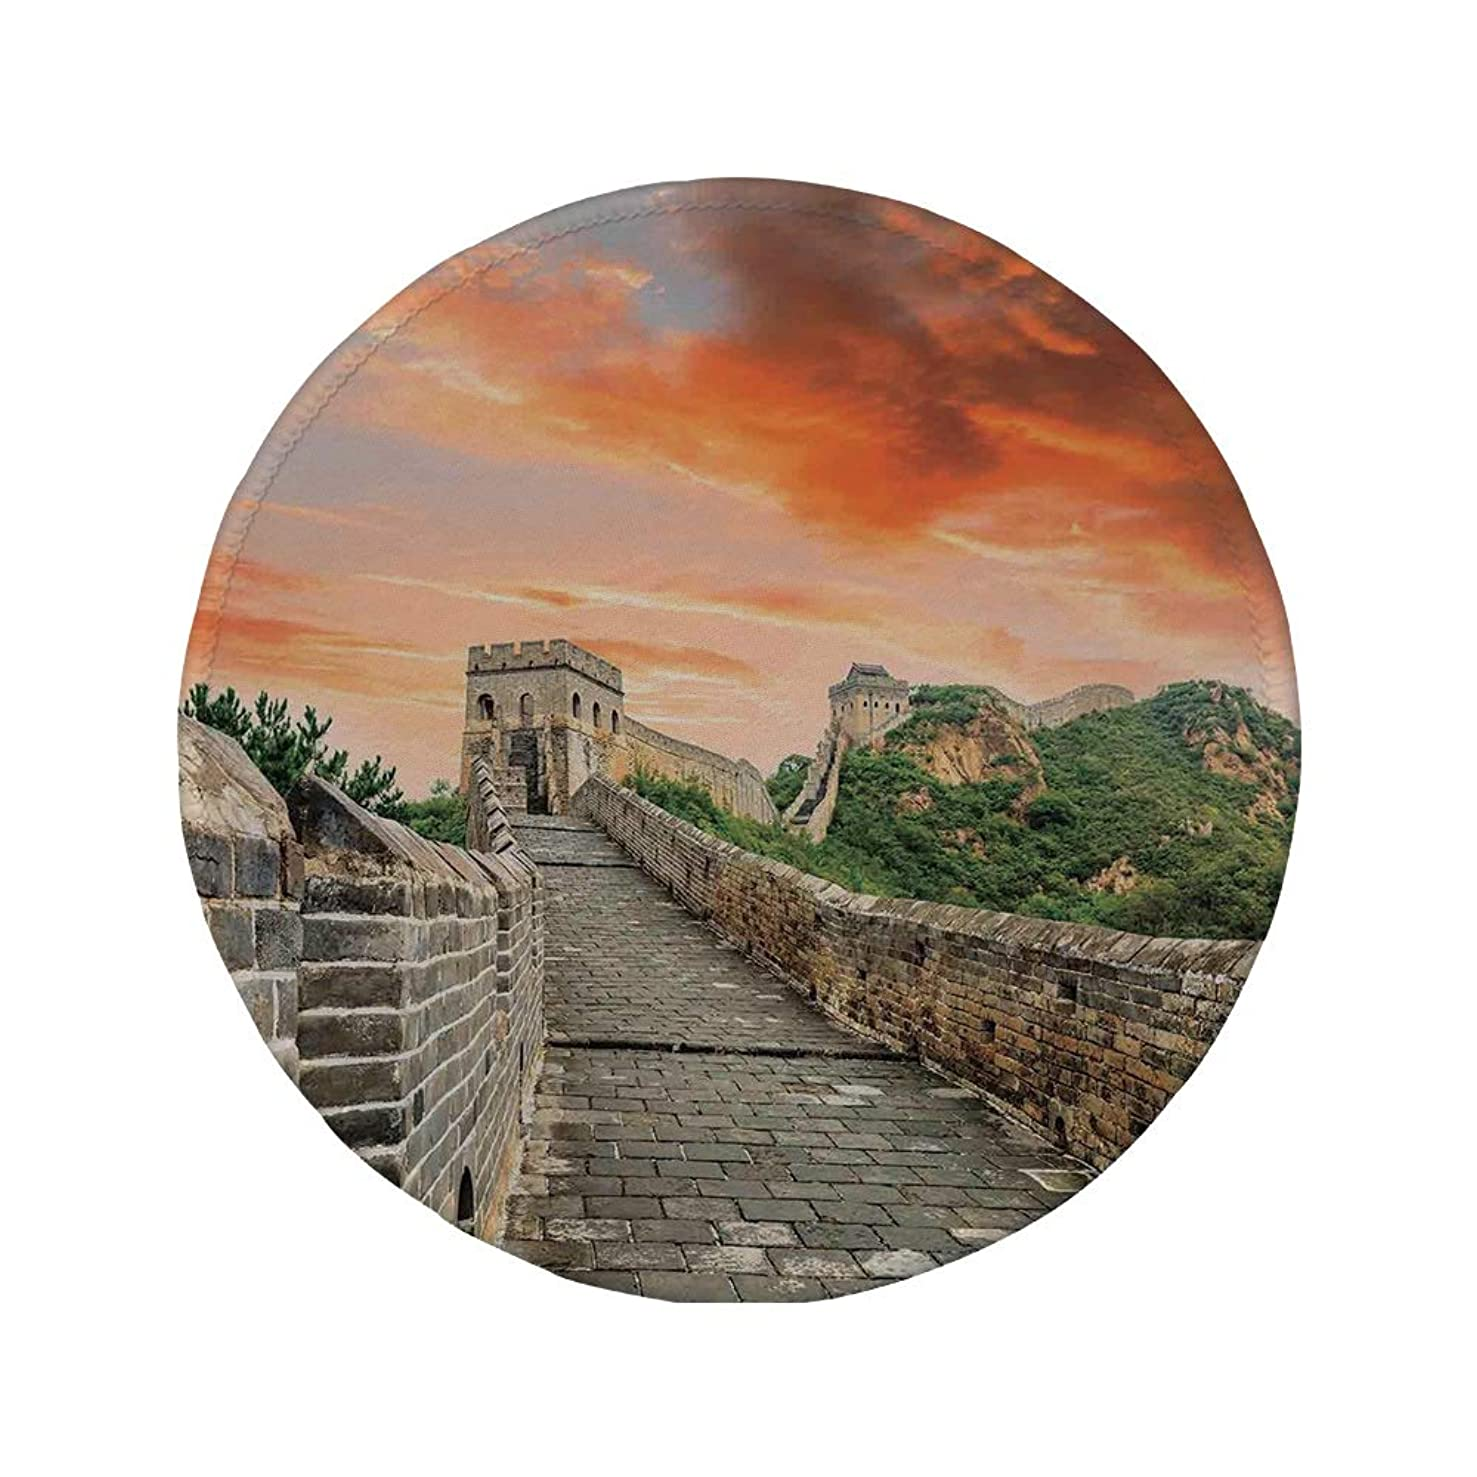 Non-Slip Rubber Round Mouse Pad,Great Wall of China,Hazy Scenic Sky Over Eastern Monument with Bricks Old Ruins Past Image,Grey Orange,11.8